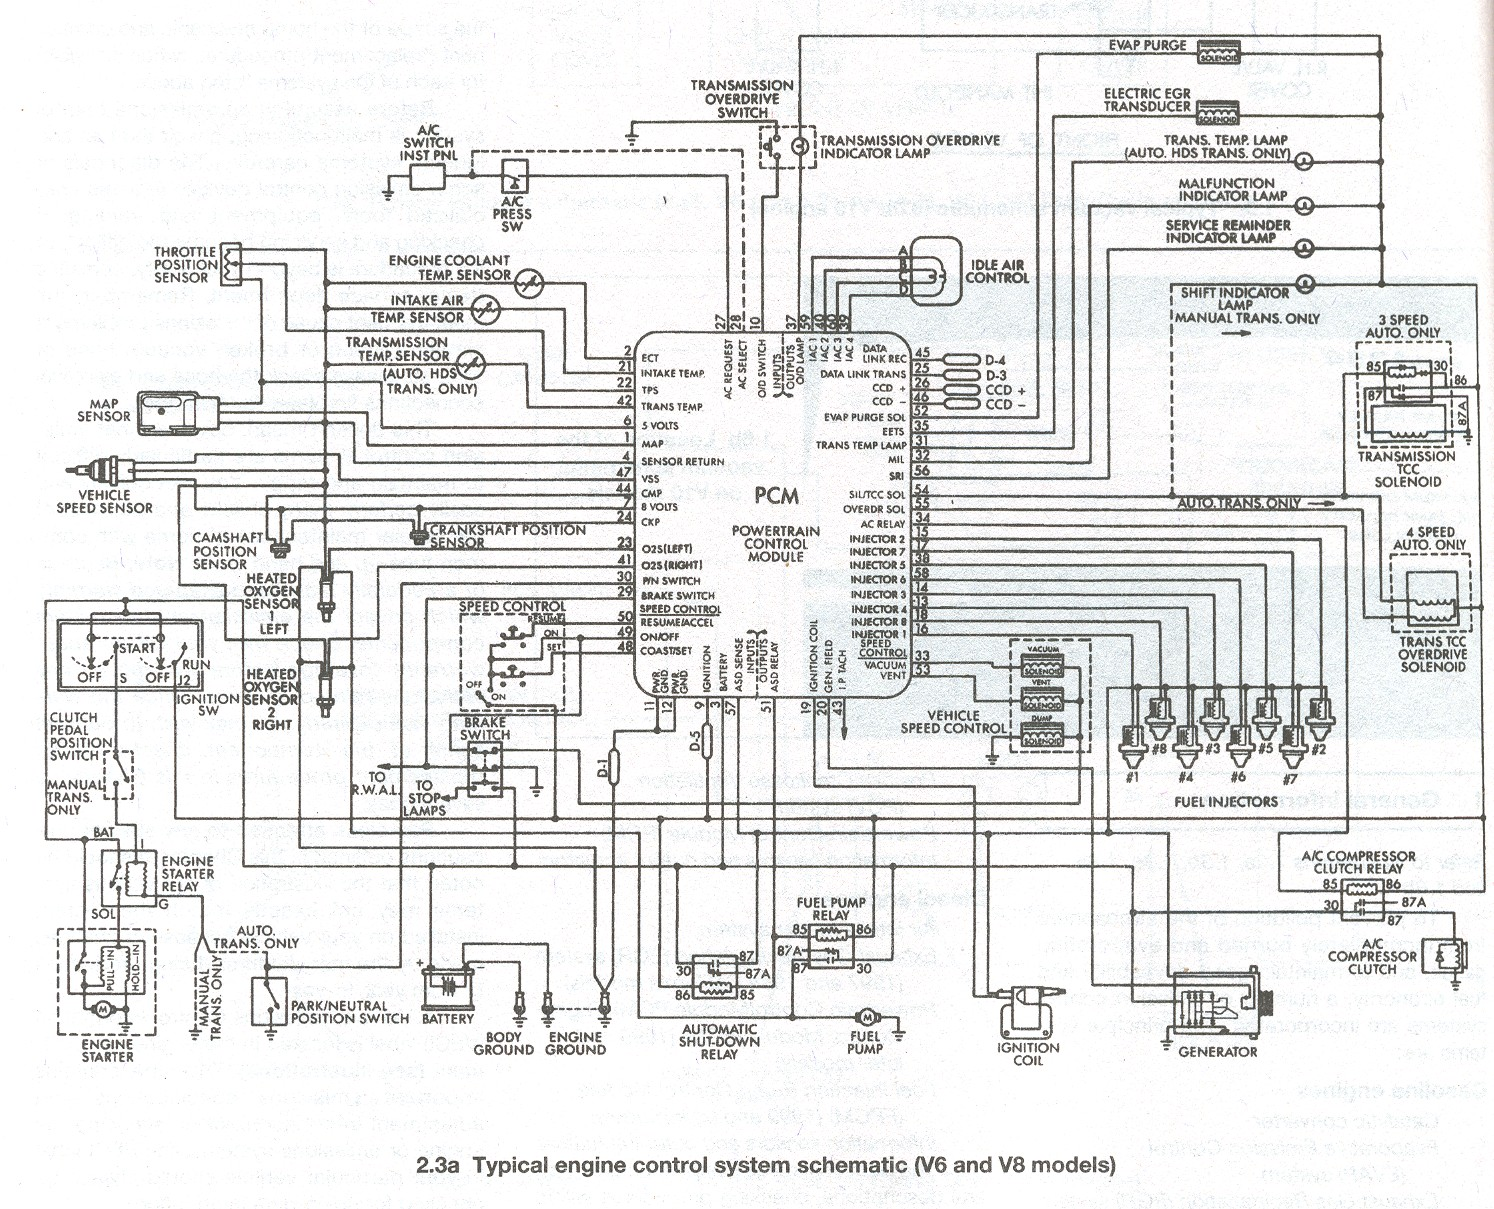 1973 satellite wiring diagram starter